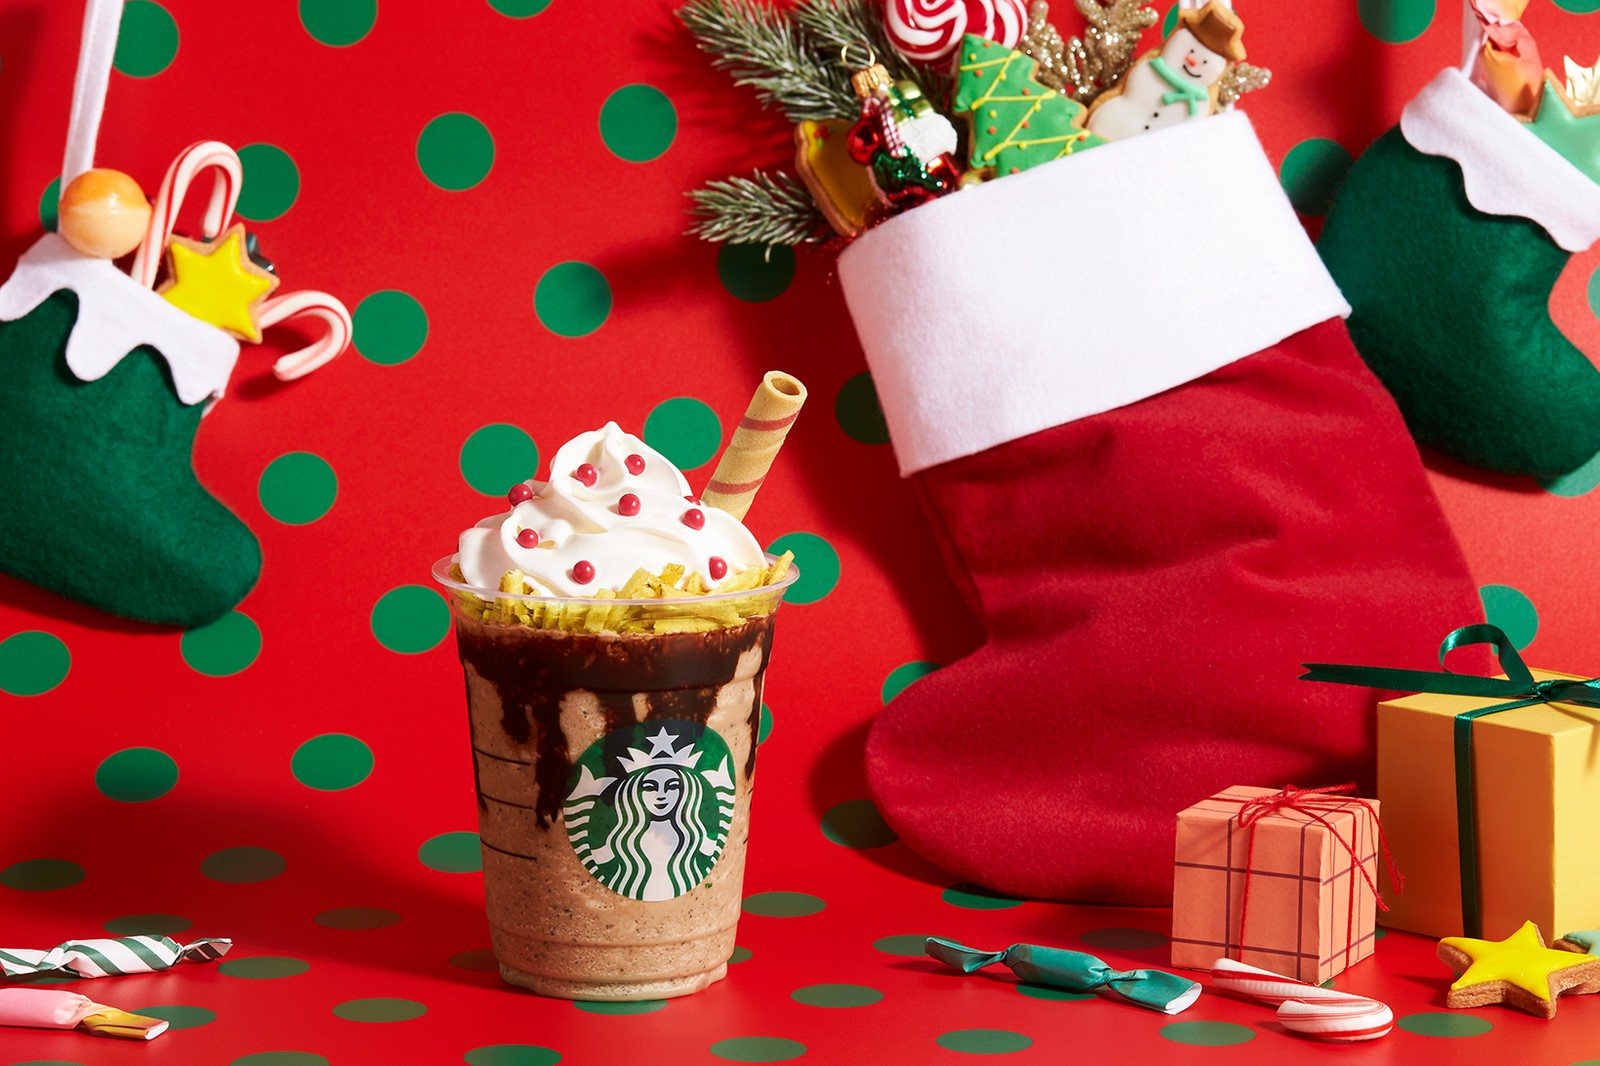 starbucks holiday christmas drinks frappuccino hong kong snoman dark mocha chocolate